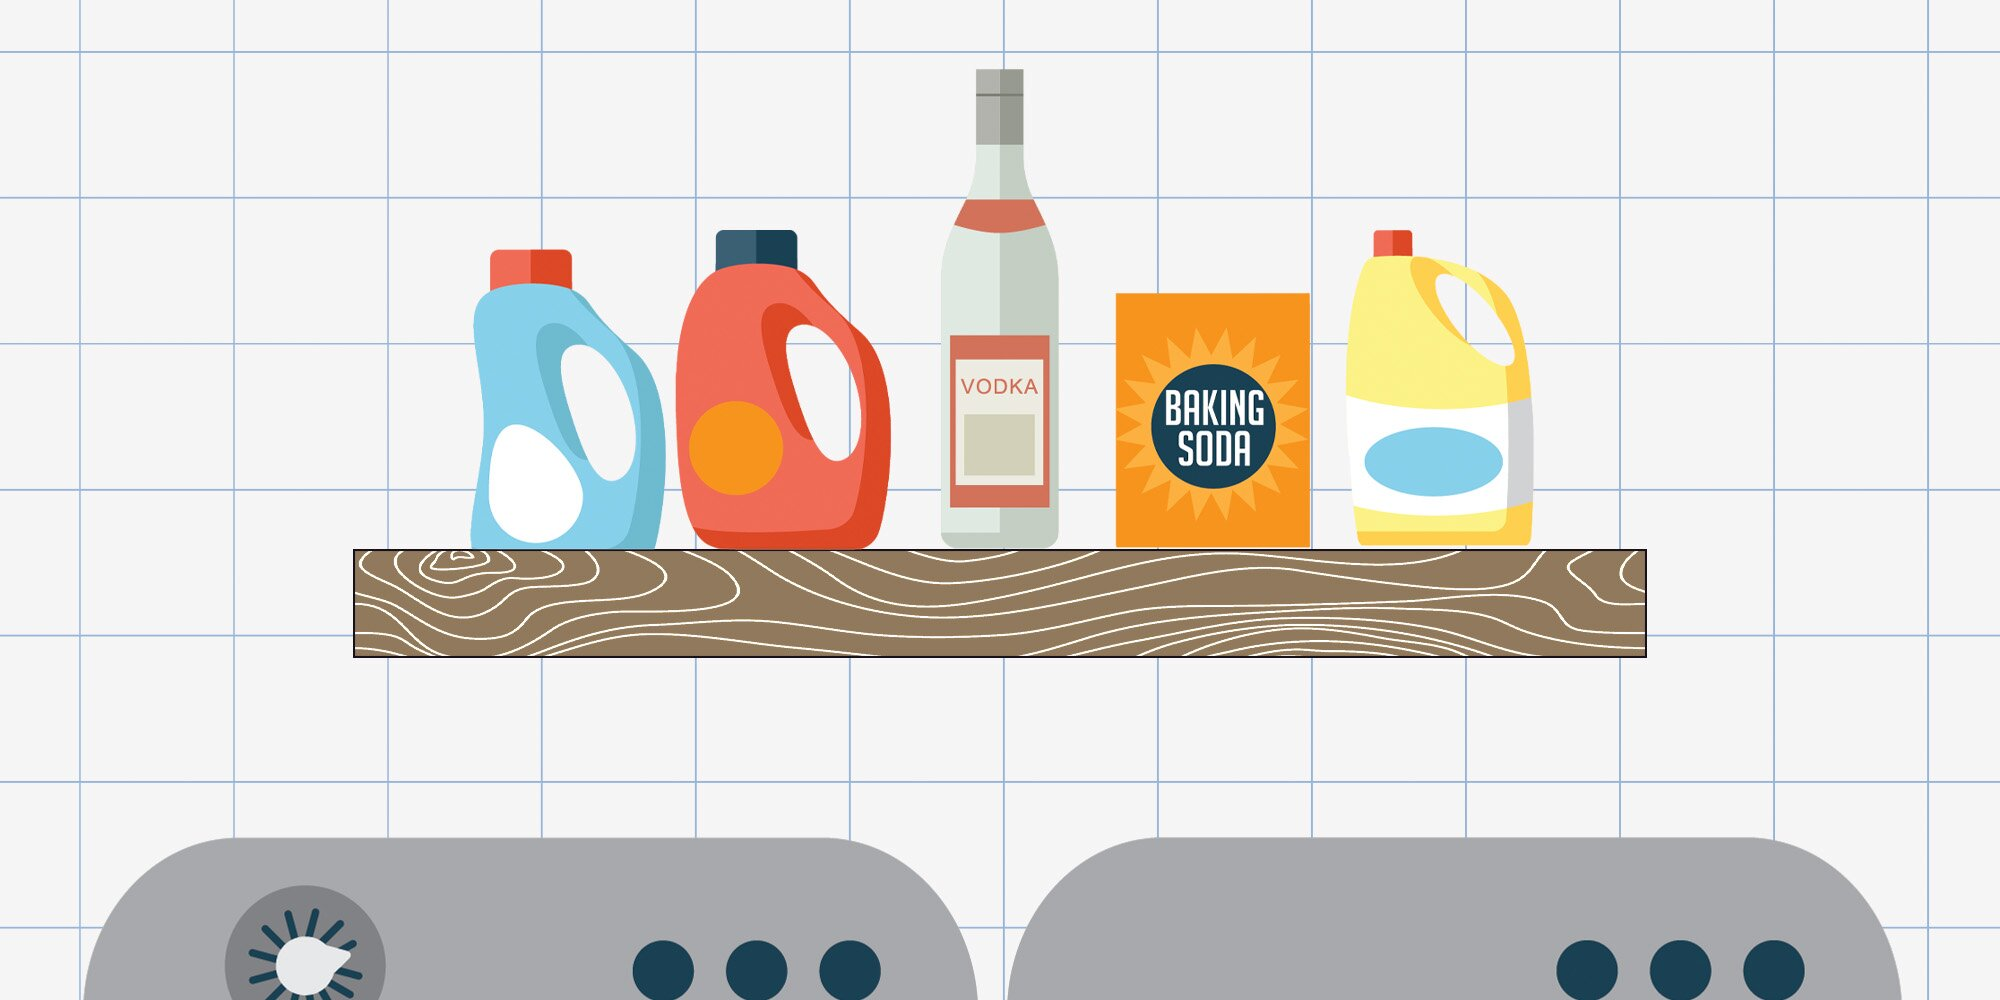 Why You Should Always Keep Vodka in Your Laundry Room, According to Cleaning Experts